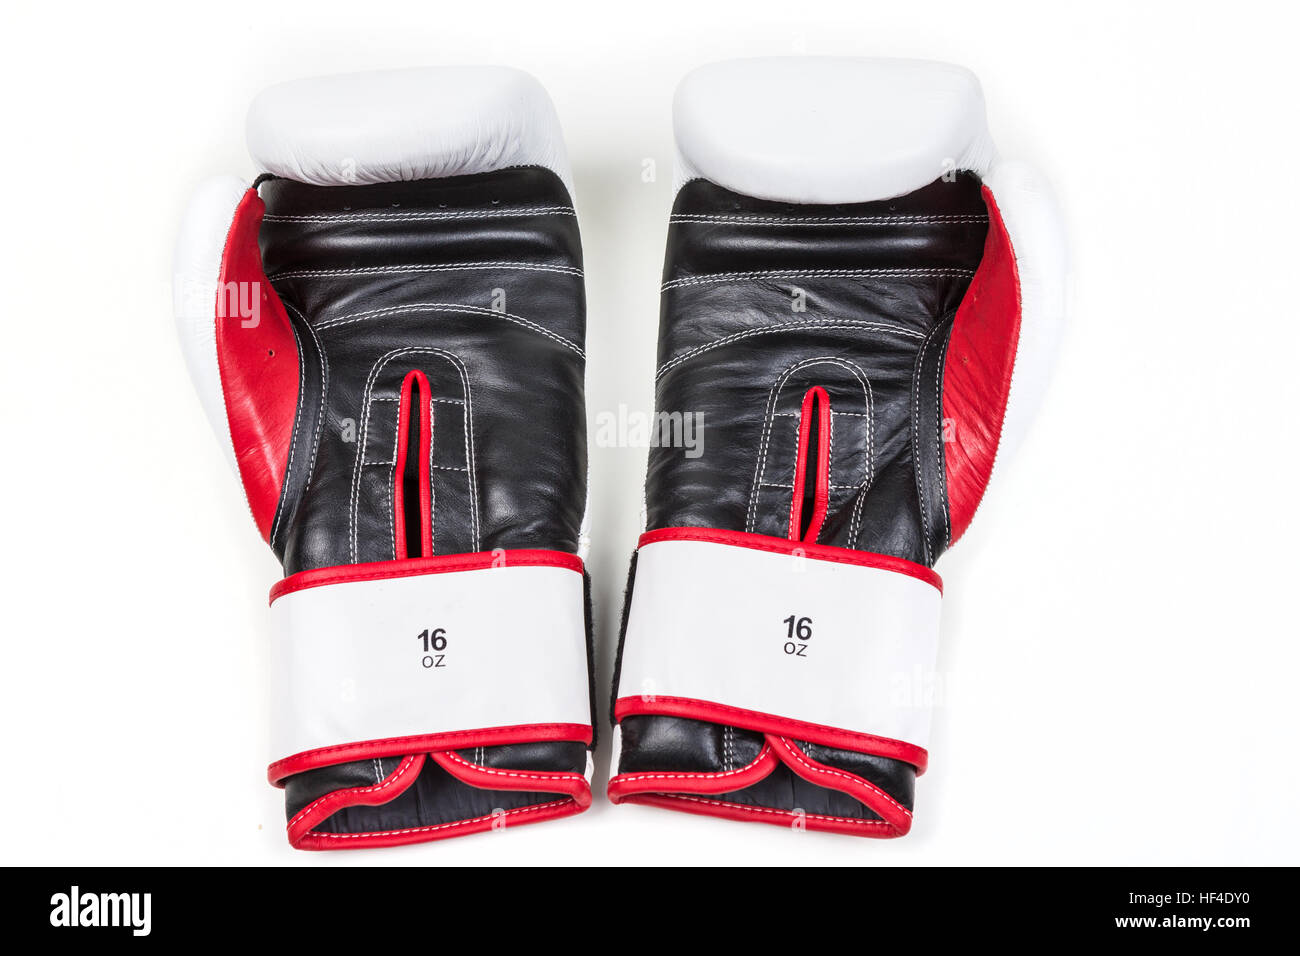 Pair of boxing gloves isolated on white background - Stock Image